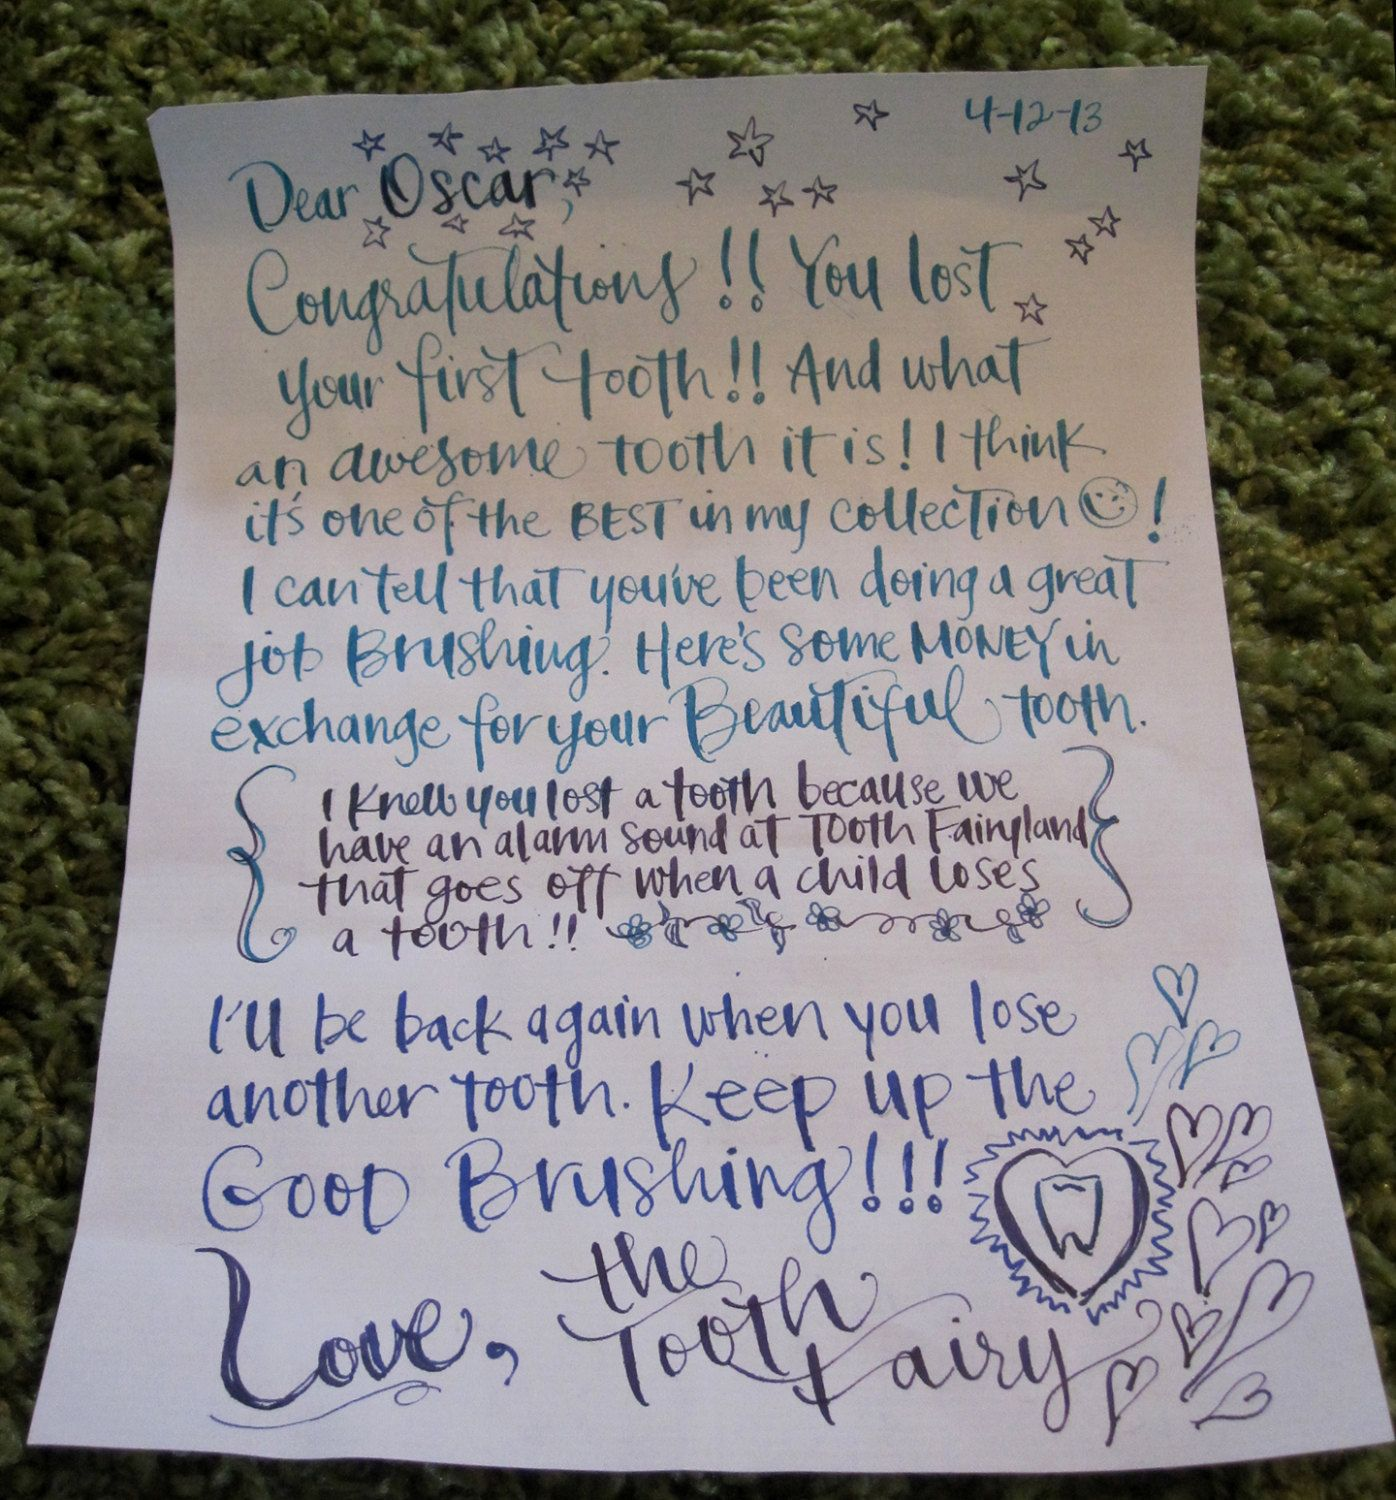 Personalized Tooth Fairy Letter in Calligraphy for Child's First Tooth #toothfairyideas